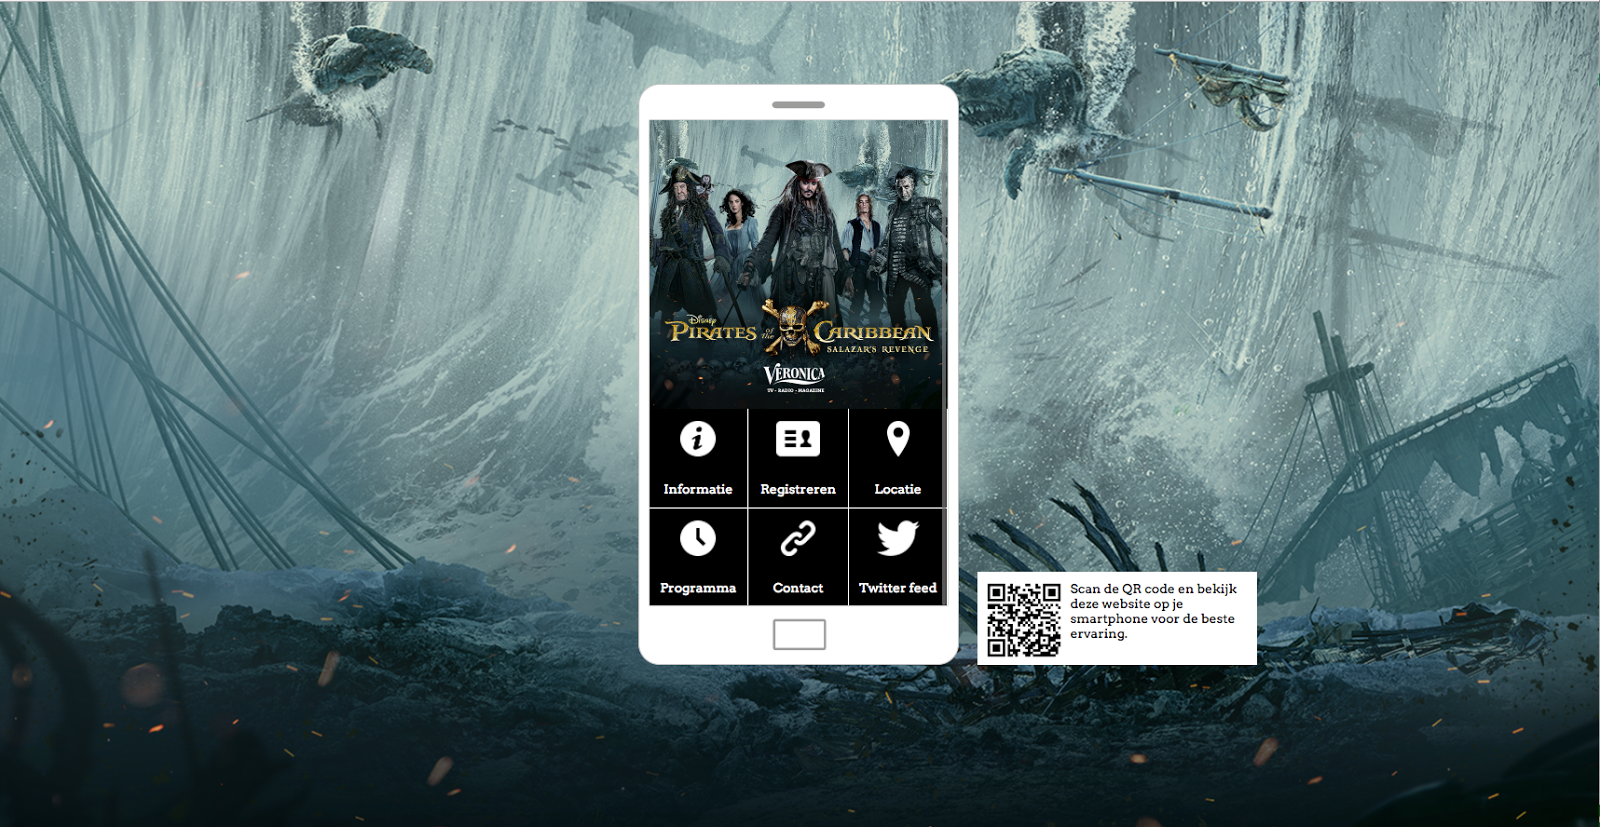 Event website voor de première van 'Pirates of the Caribbean'